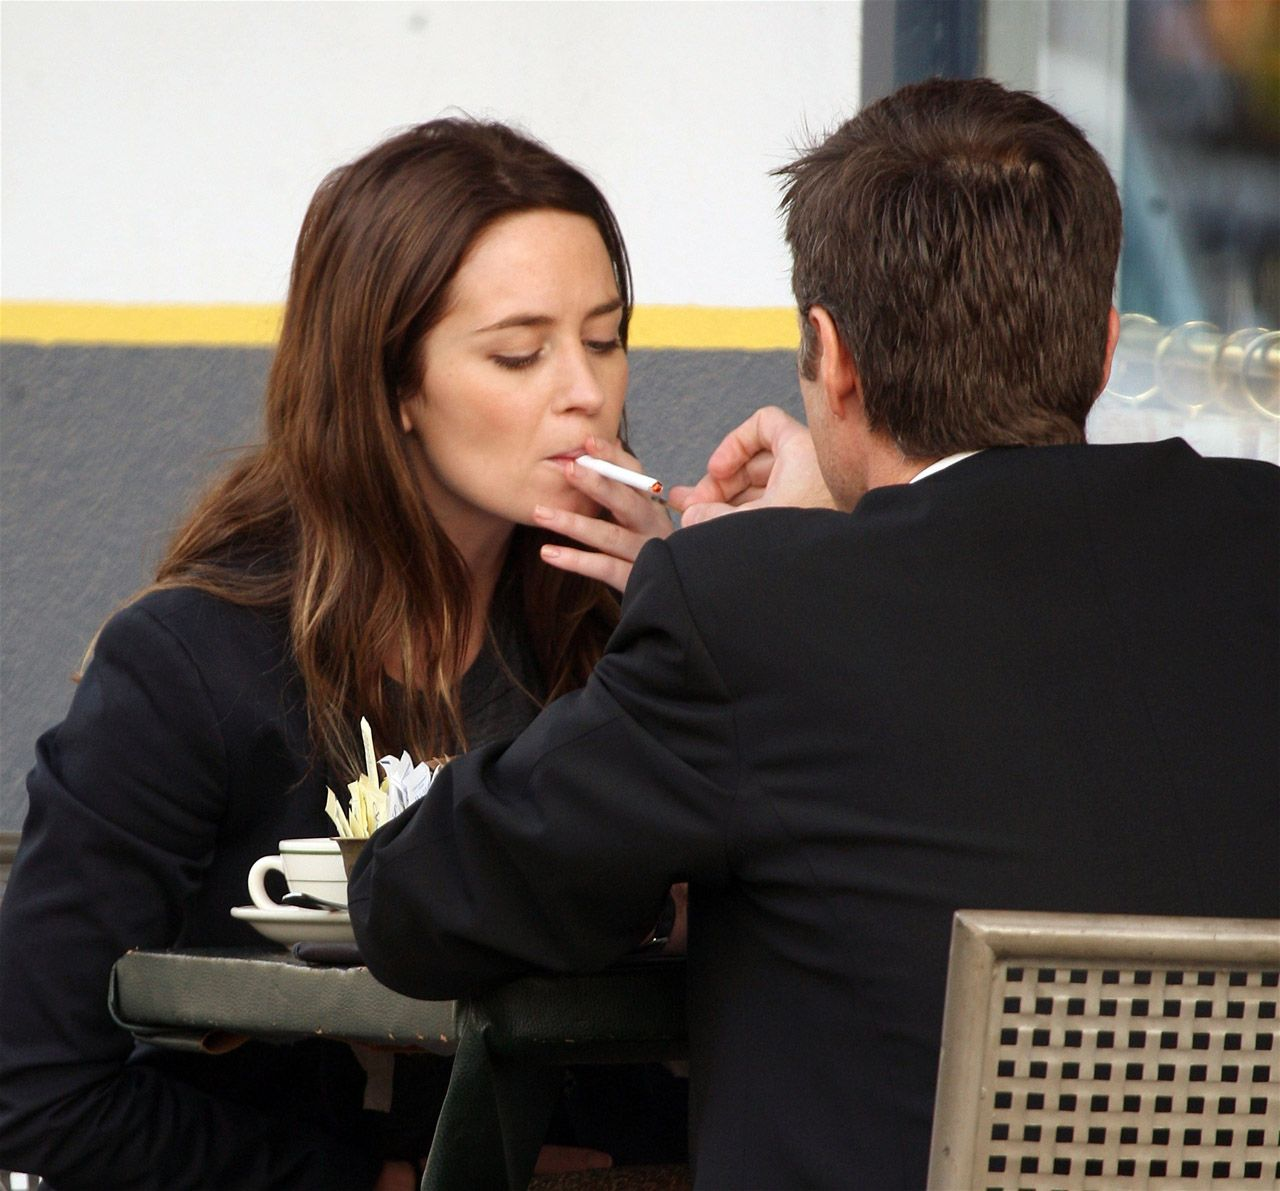 Emily Blunt smoking a cigarette (or weed)